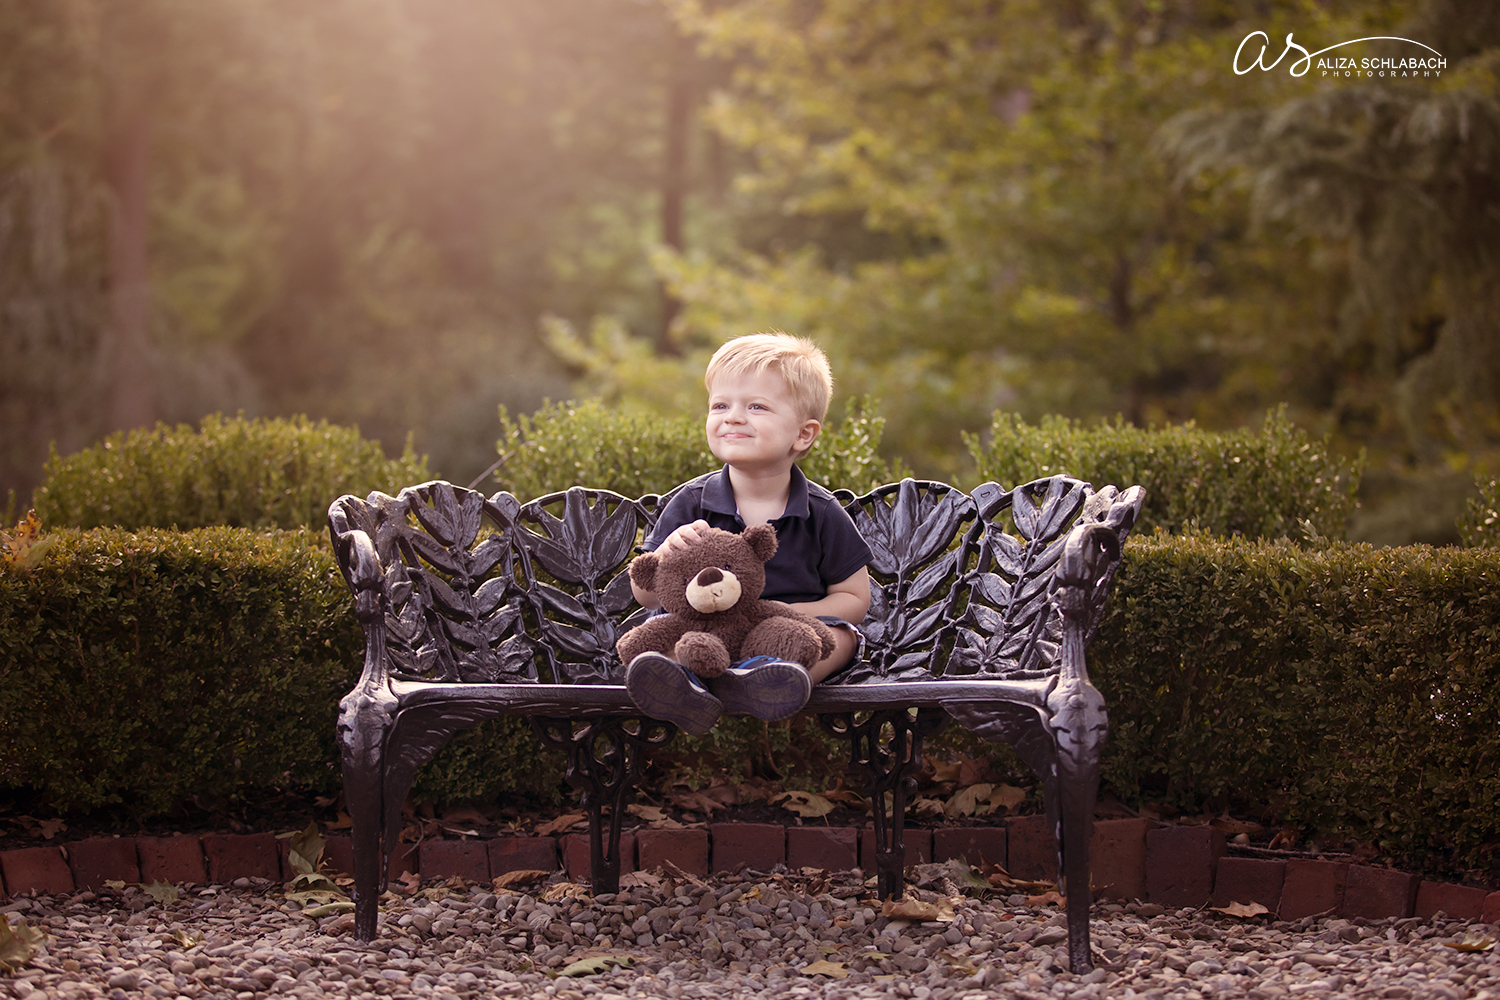 Outdoor portrait of a little blonde boy with his teddy bear on a bench at Appleford Estate in Villanova